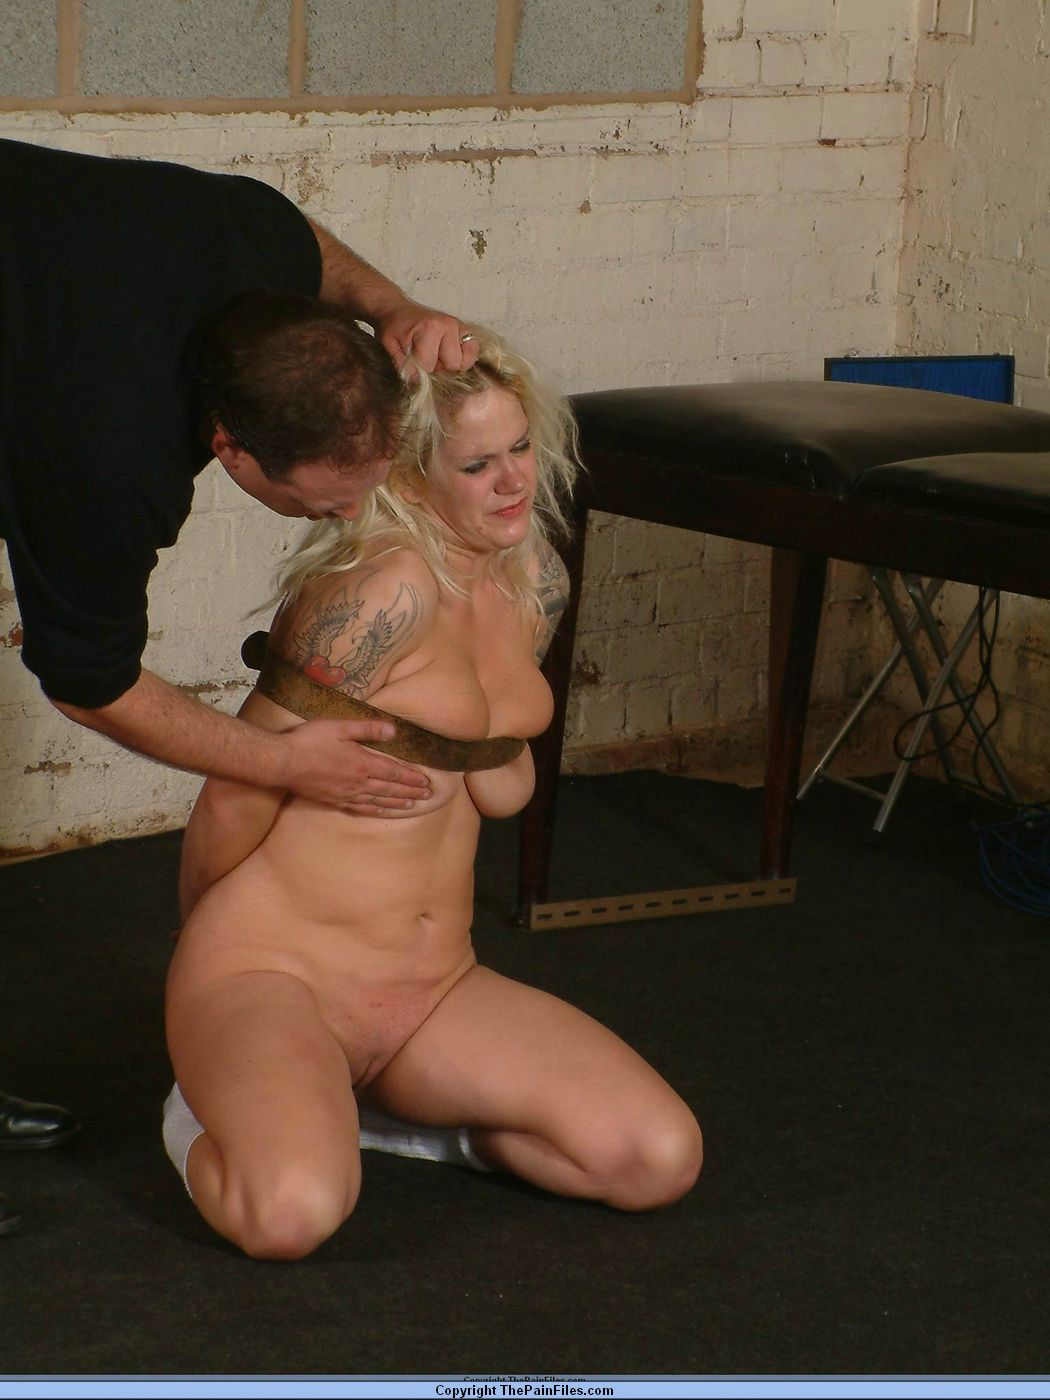 Adult archive Catheter play fetish